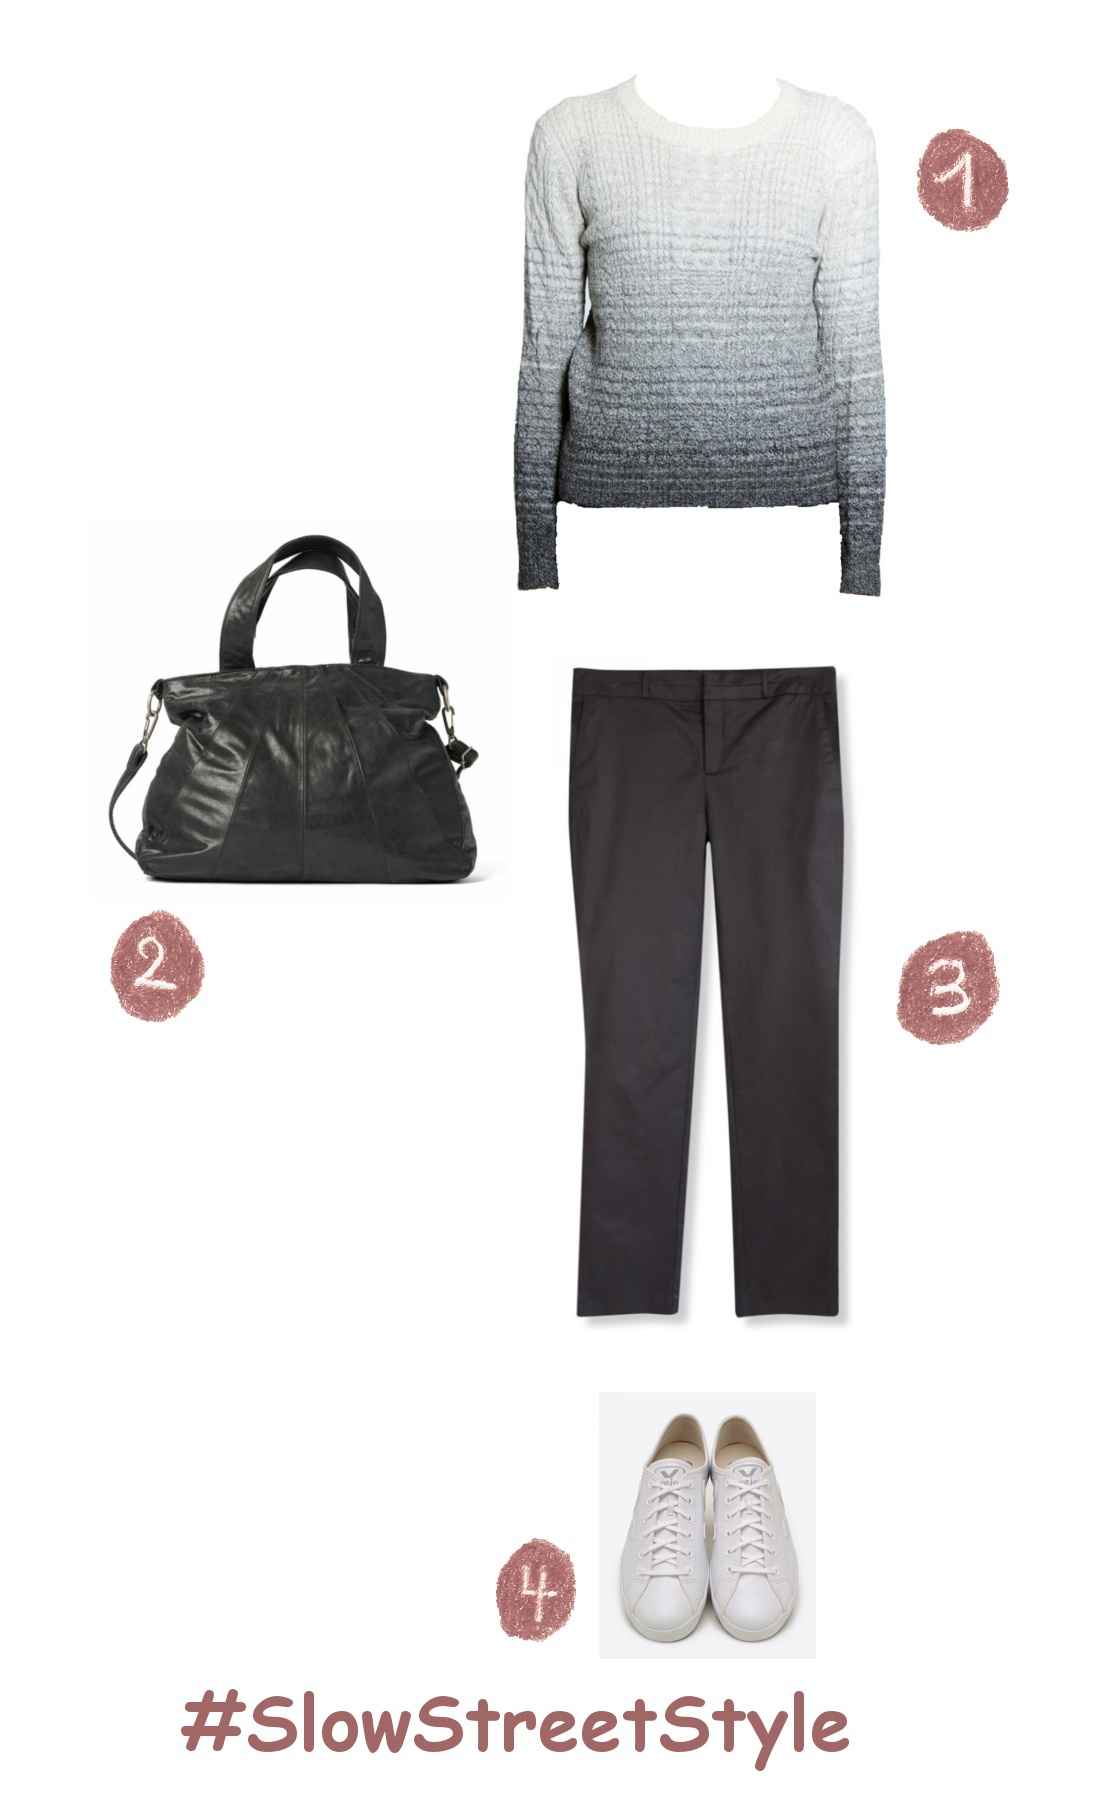 Slow streetstyle look: shaded white to grey jumper, black handbag, black trousers and white sneakers